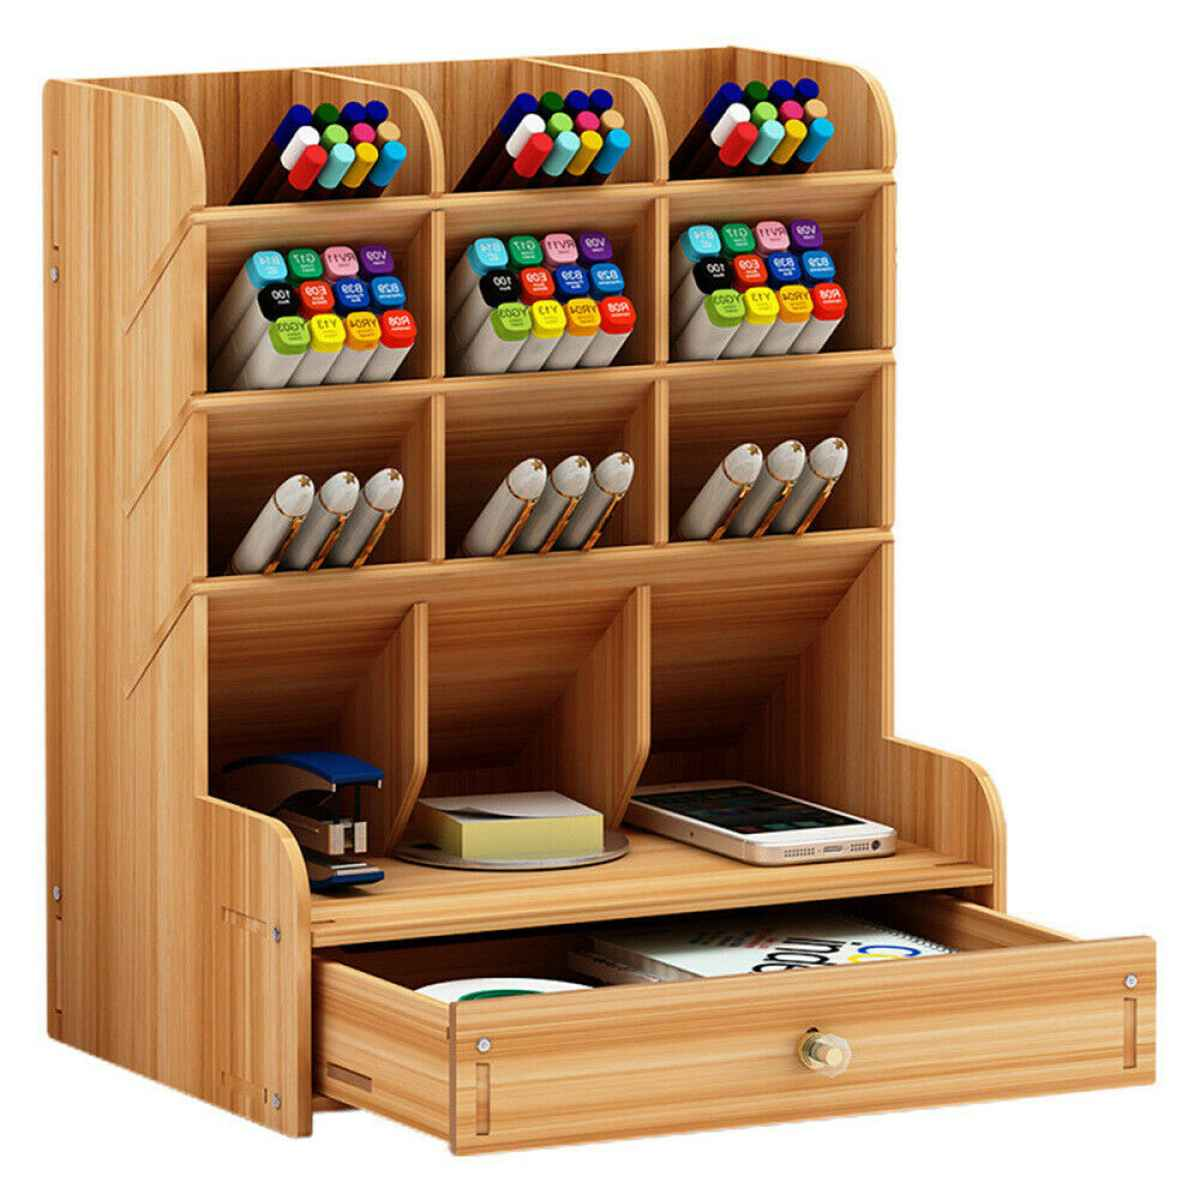 Multi-function Wood 13 Grids Desktop Stand Holder Cosmetic Brush Storage Box For Pencil Pen Cosmetic Brush Jewelry Display Rack